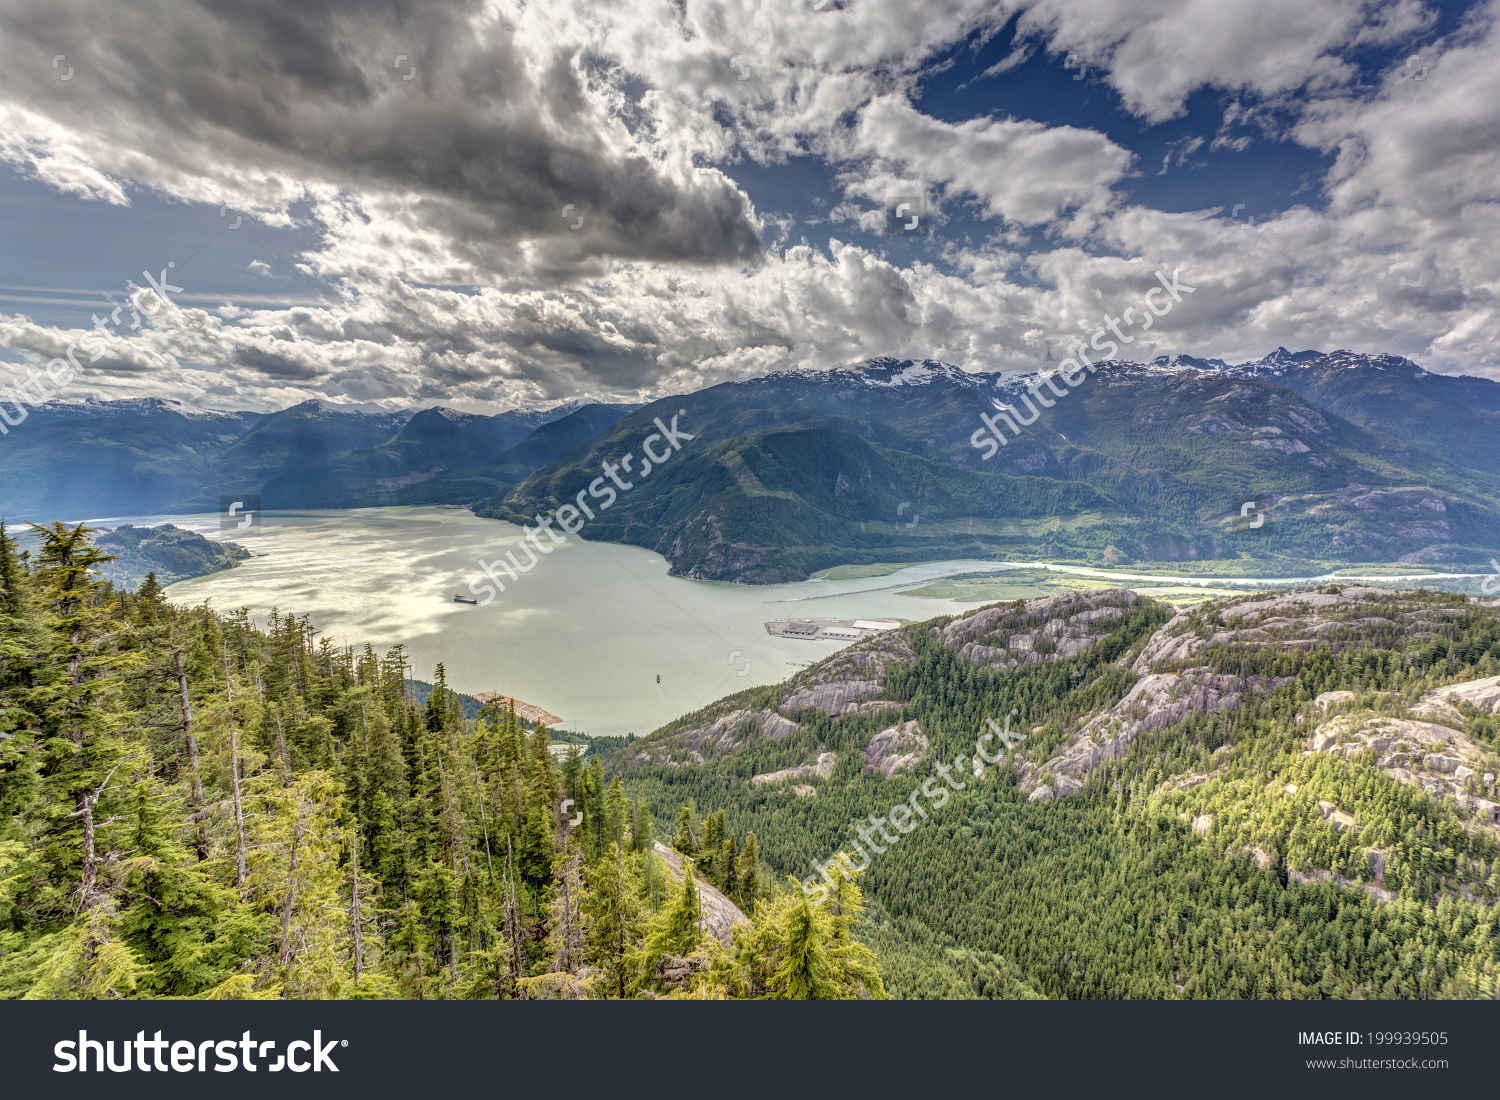 Scenic View Of Howe Sound From The Sea To Sky Gondola In Squamish.